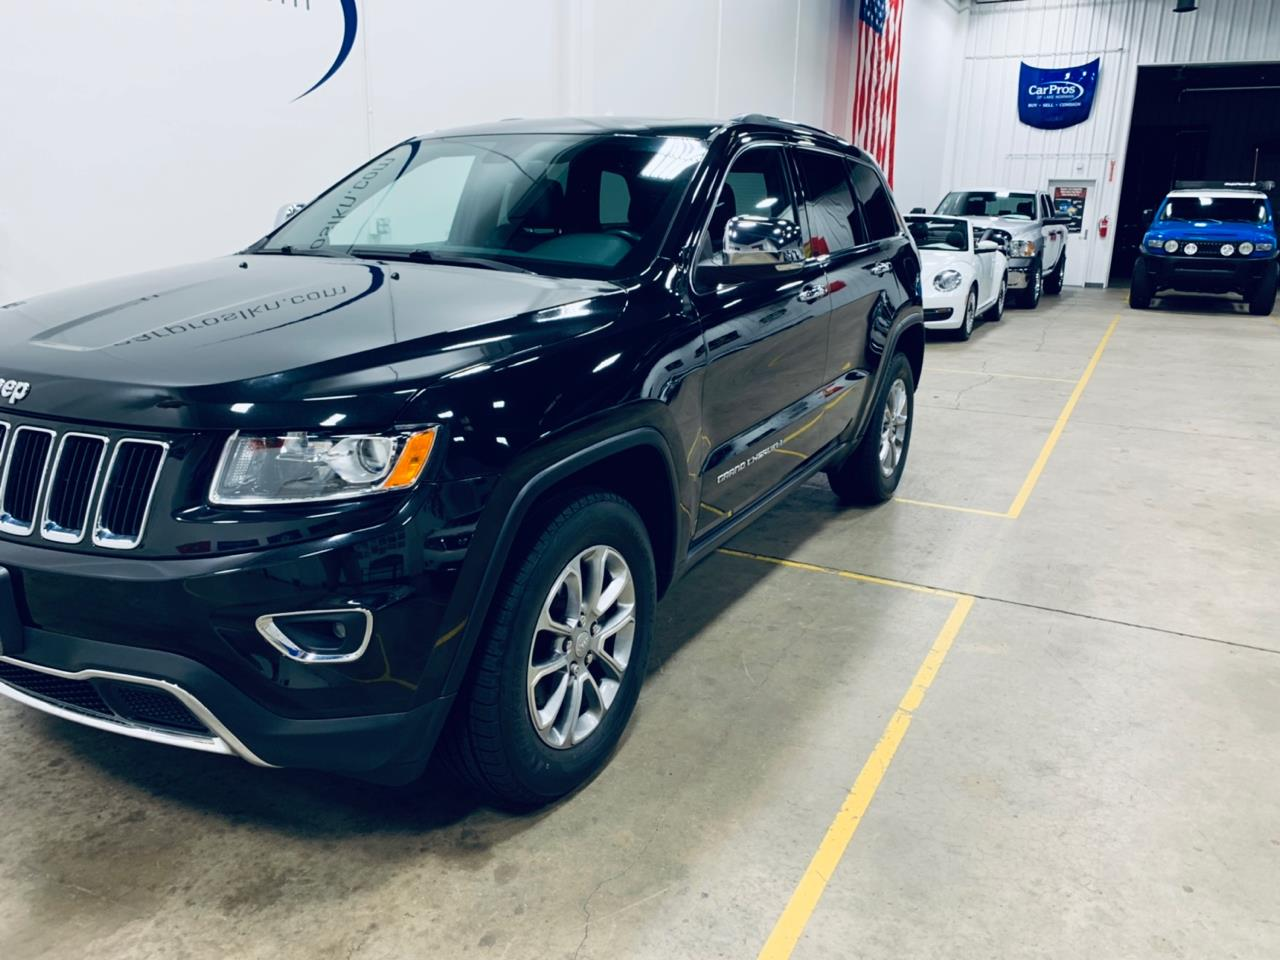 Large Picture of '15 Grand Cherokee located in North Carolina - $26,240.00 - QK7I